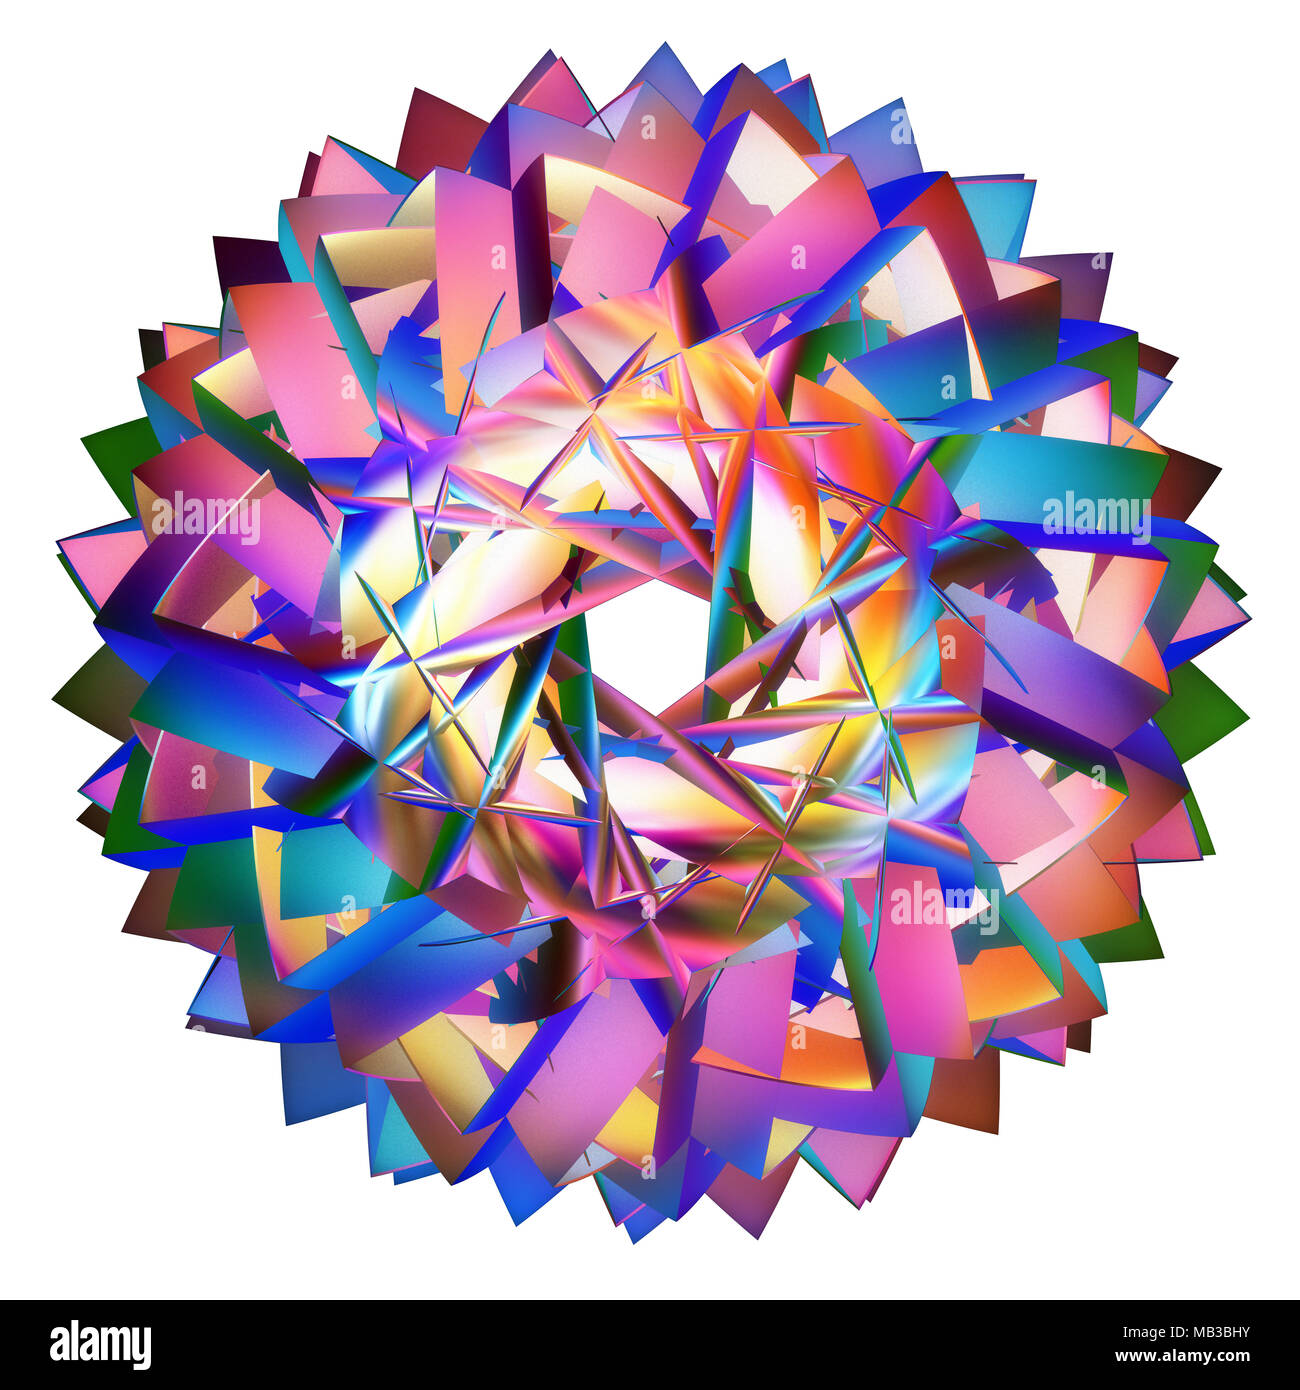 colored hyperbolic tessellation computer generated - Stock Image